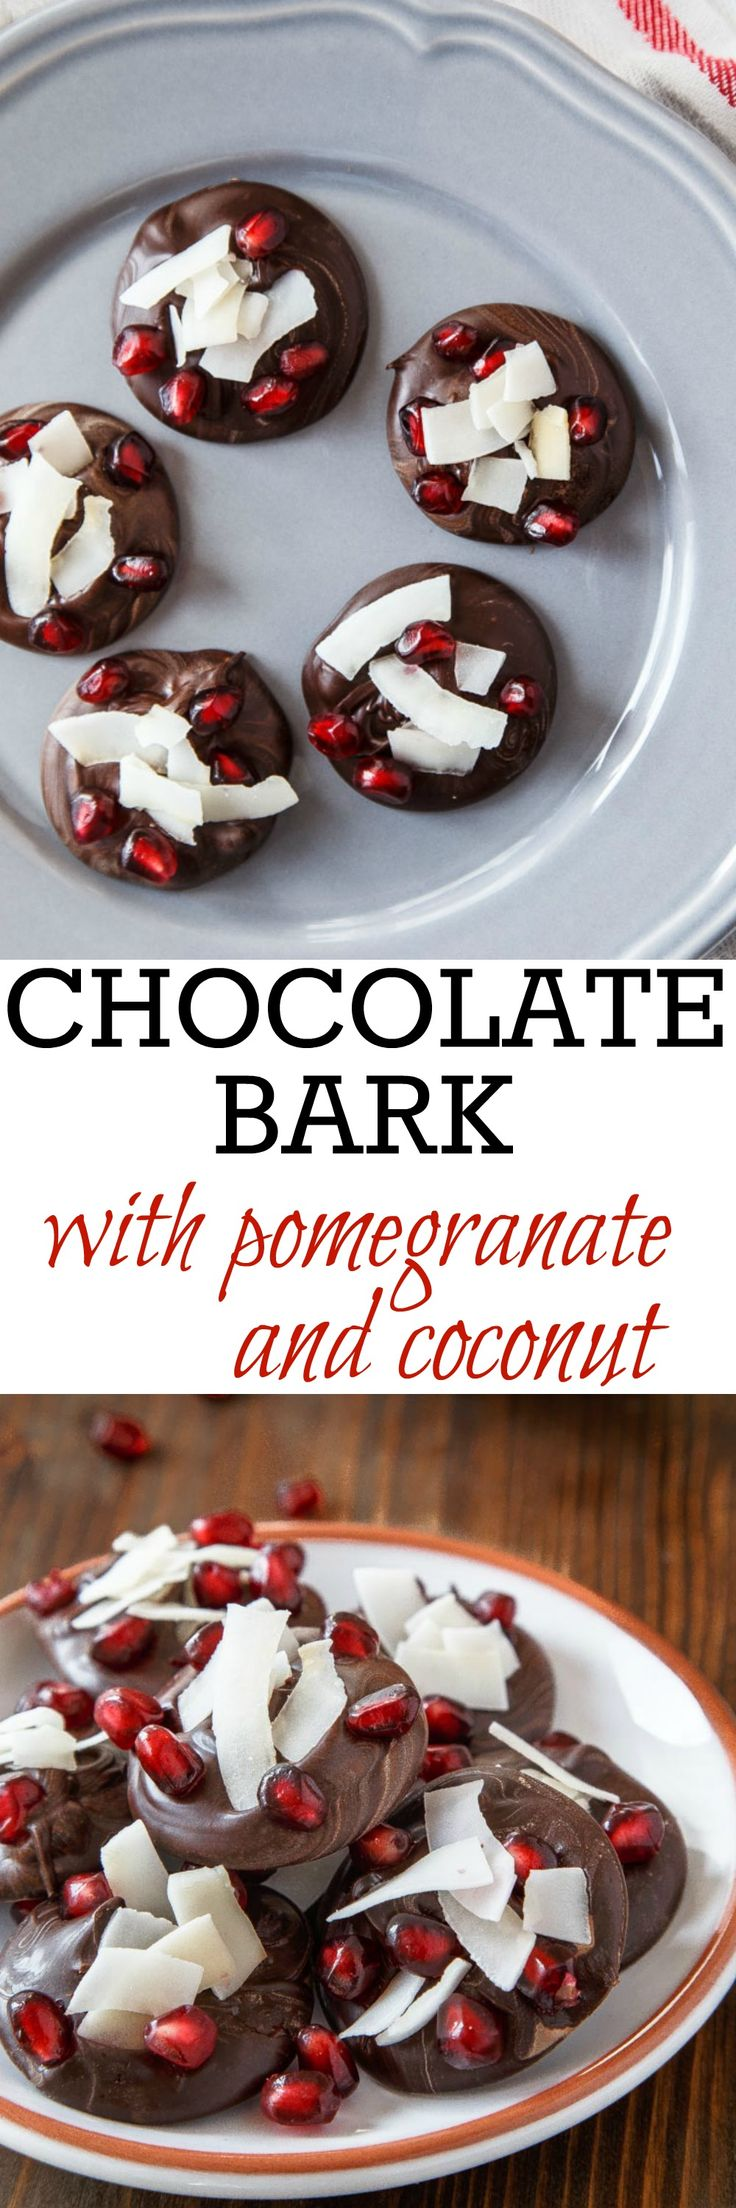 Pretty pretty chocolate bark recipe. Easy! Just 3 ingredients: melted chocolate, pomegranate seeds and coconut flakes. Make a small or large batch! @dessertfortwo